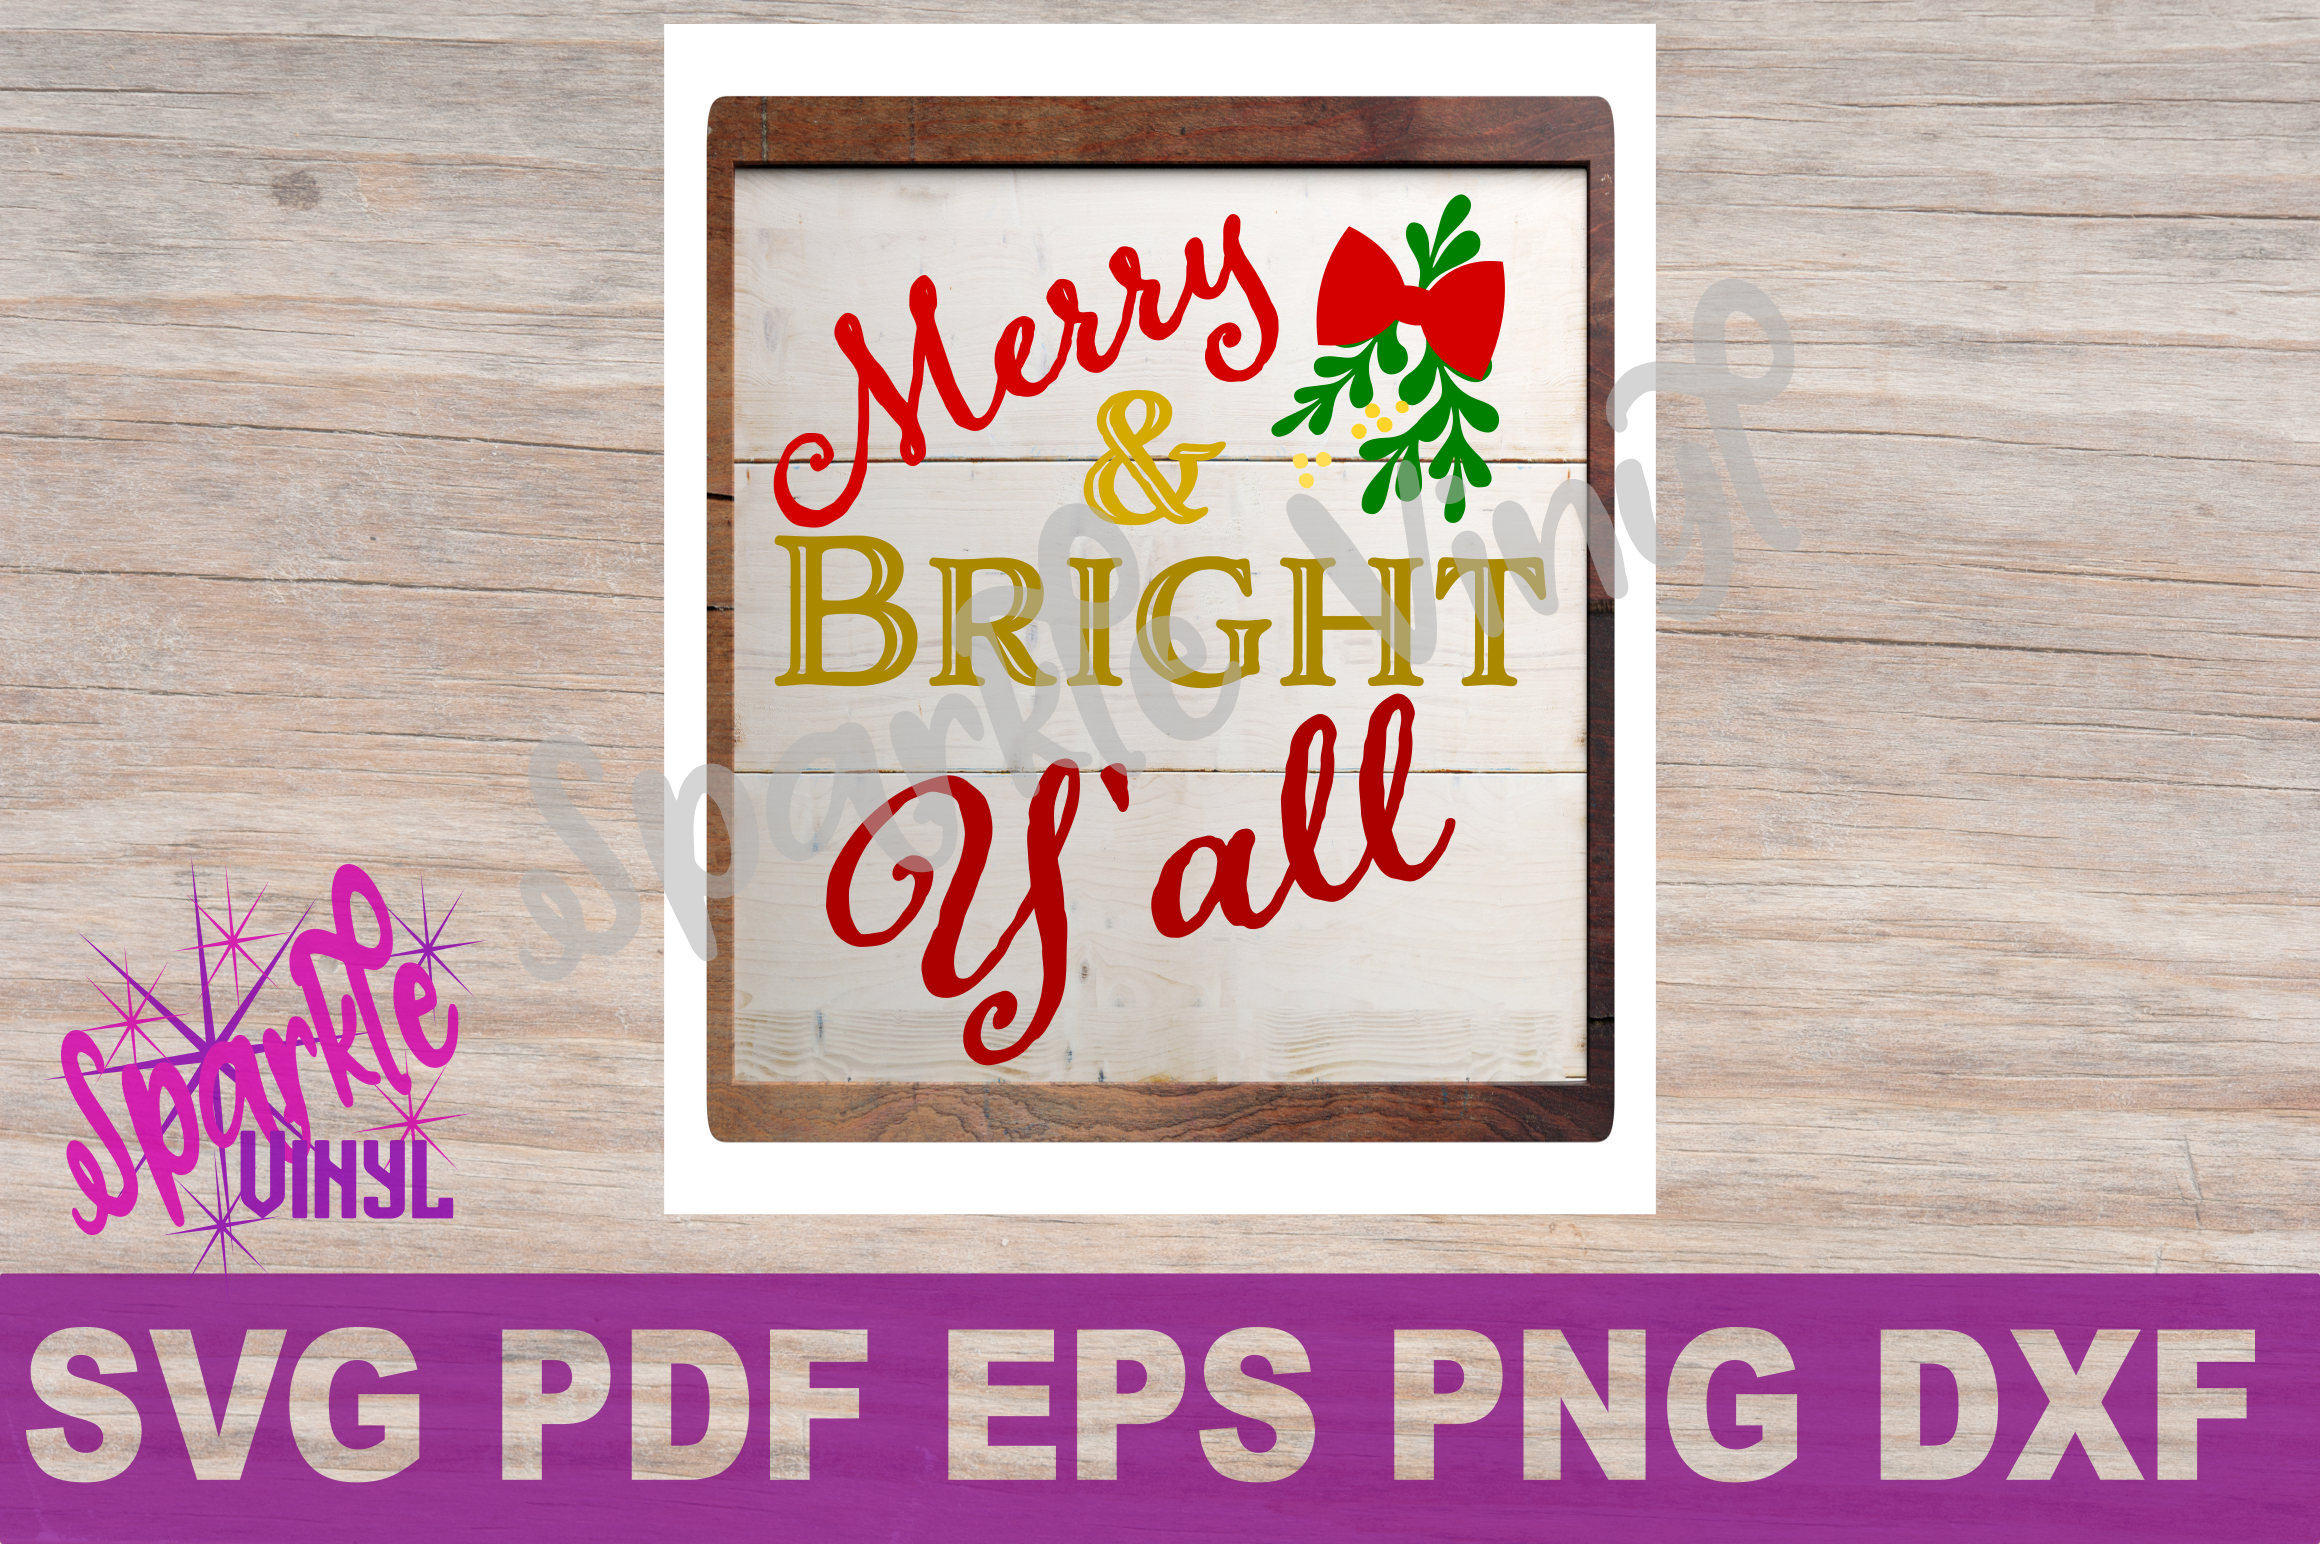 Svg Christmas Sign Stencil Bundle printable svg dxf png pdf esp files for cricut or silhouette Merry Christmas Trees Sold here Mistletoe svg example image 4